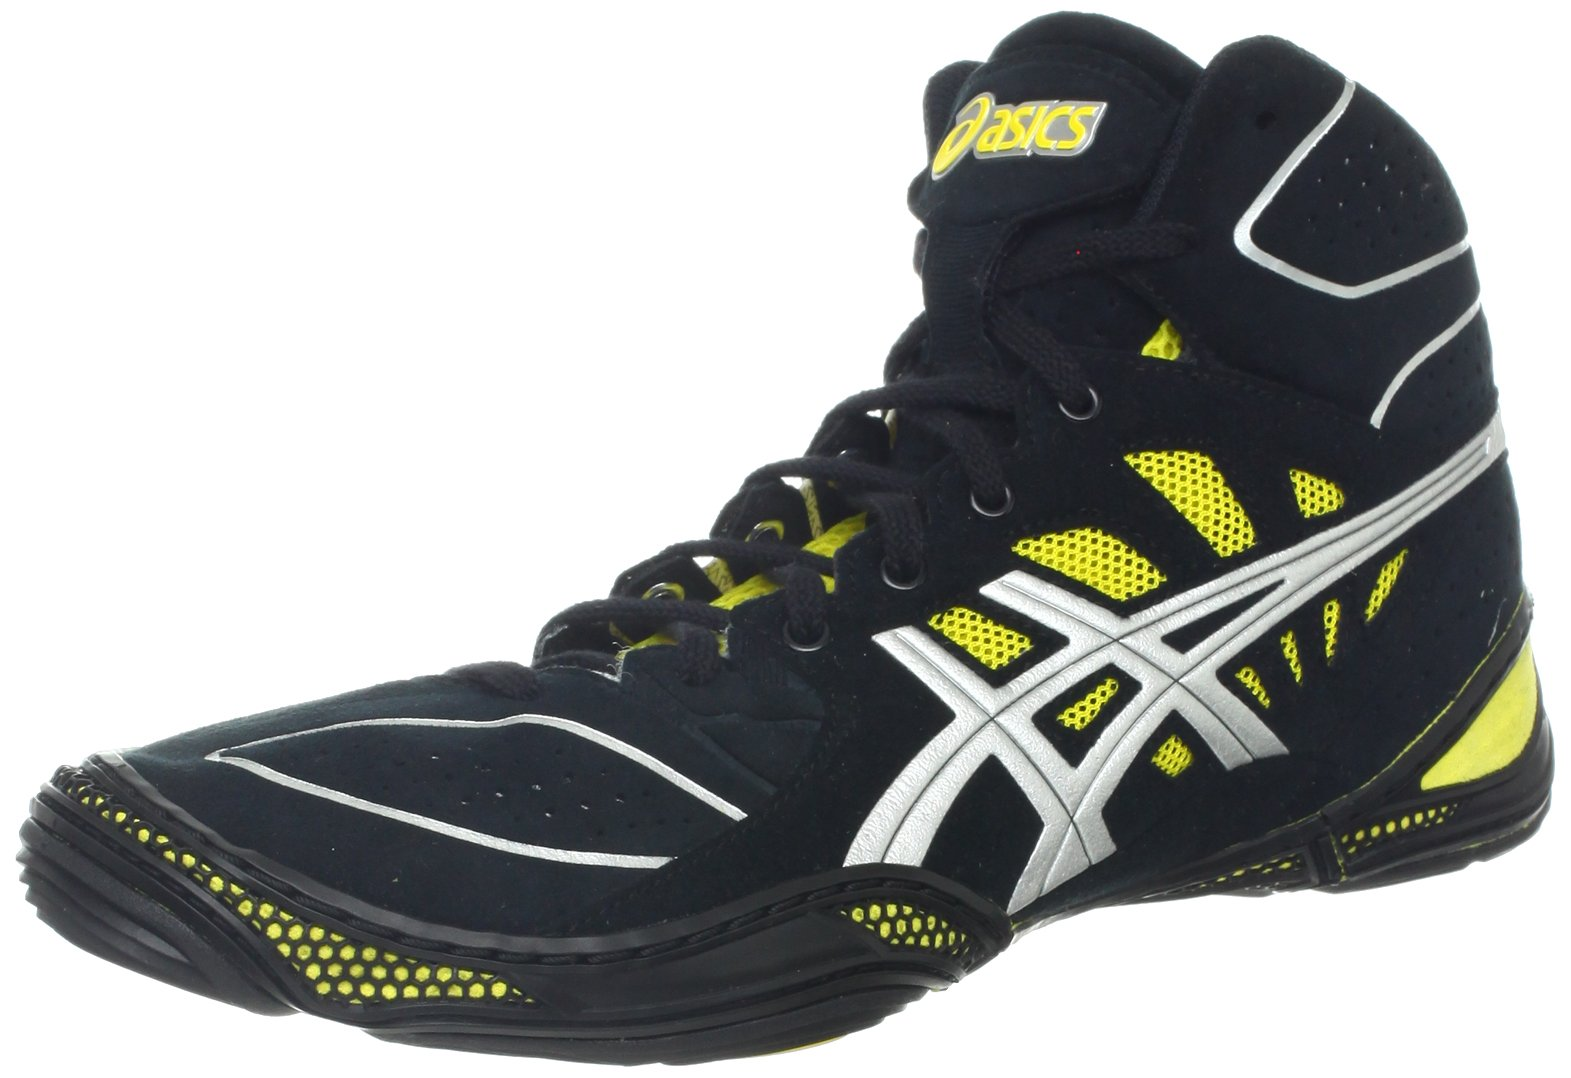 ASICS Men's Dan Gable Ultimate 3 Wrestling Shoe,Black/Silver/Yellow,10.5 M US by ASICS